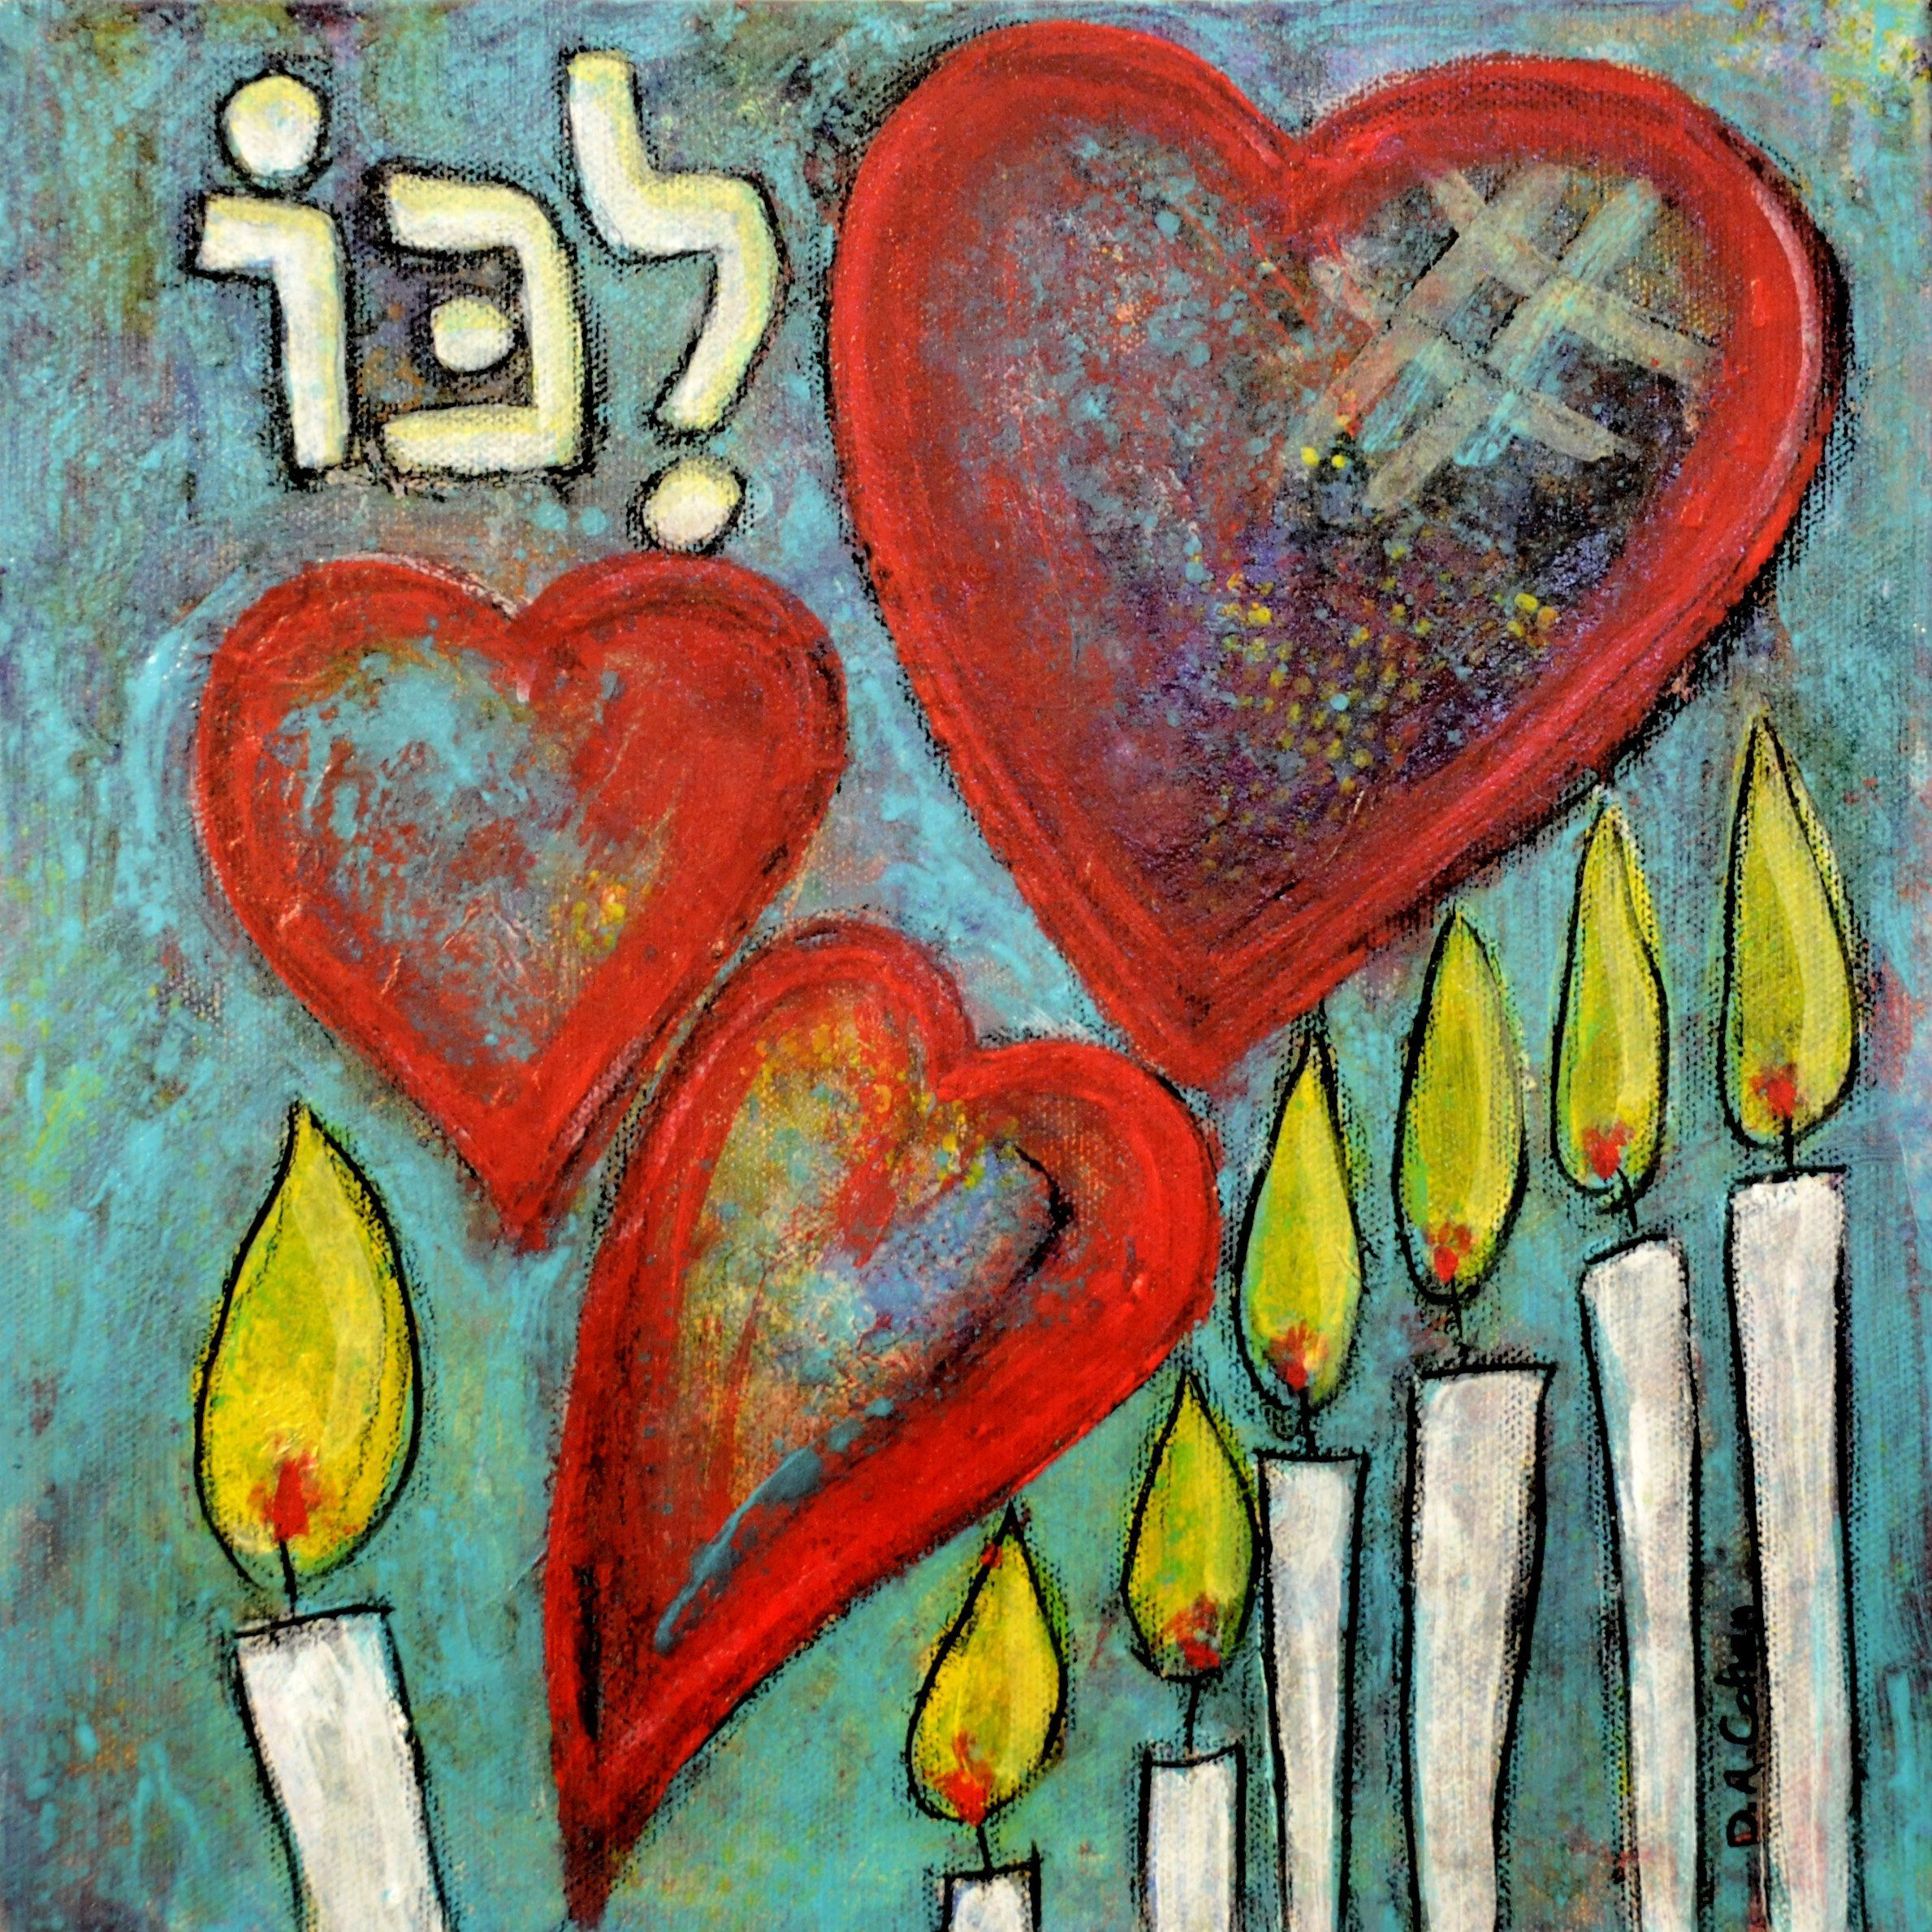 """Handmade Jewish Art Original Painting titled """"Of His Heart"""" by Deb Cohen, 10x10 Canvas. A mixed media original painting by Debra Cohen. """"Of His Heart"""" , written in Hebrew (on the top left), is from Psalm 33 of King David, that's the inspiration for this painting. This Original painting is on a stretched 10x10 by 1"""" deep 100% Cotton Canvas with mostly acrylic paints & some inks. A Seven Candle Menorah is painted along the bottom & over the side of the canvas. HaShem be glorified :o) Three..."""